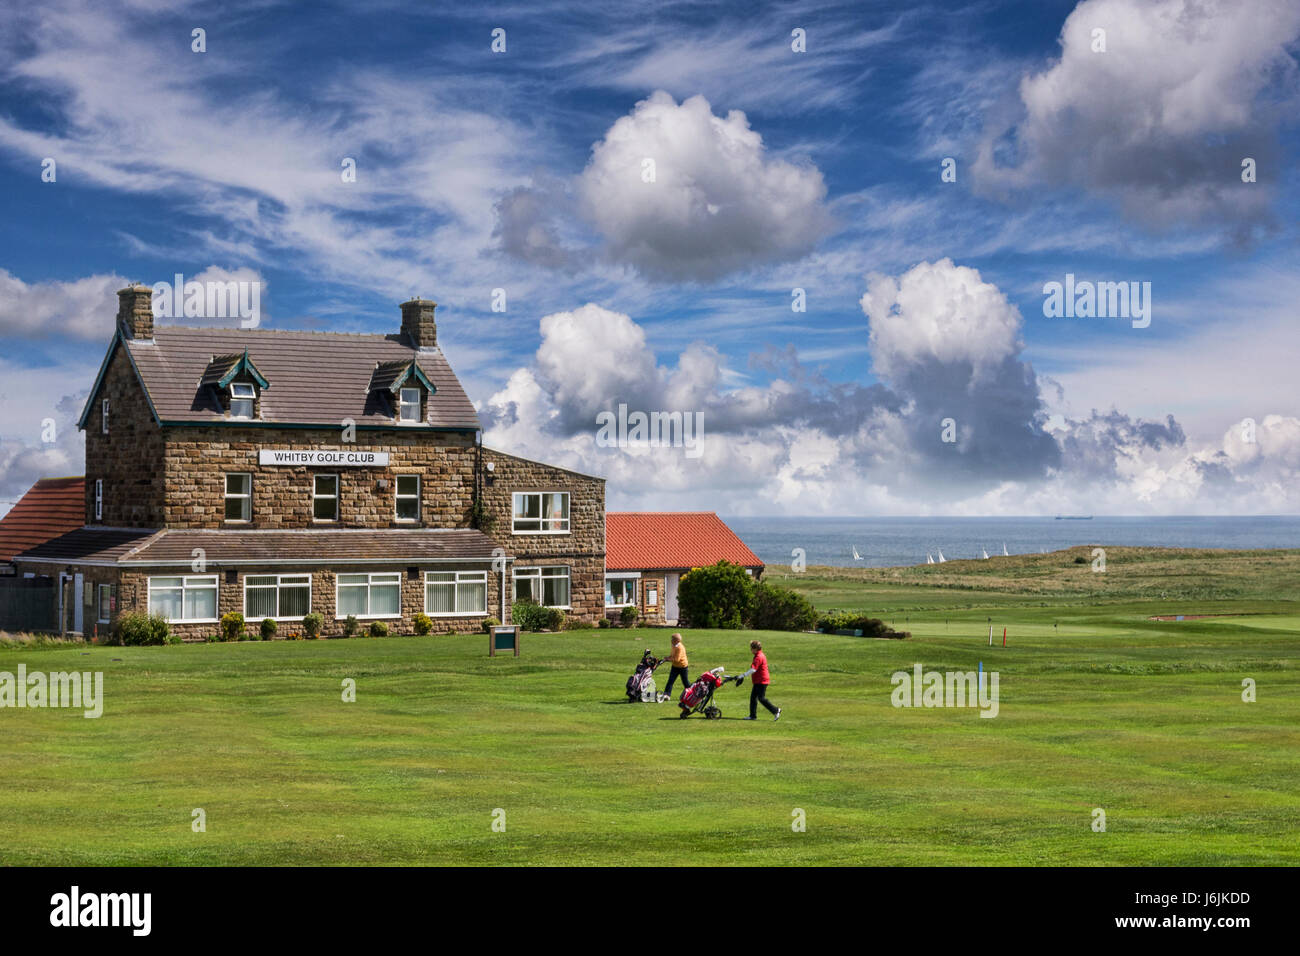 Two lady golfers walk in front of Whitby Golf Club with their golf trolleys, Whitby, North Yorkshire, England, UK, - Stock Image